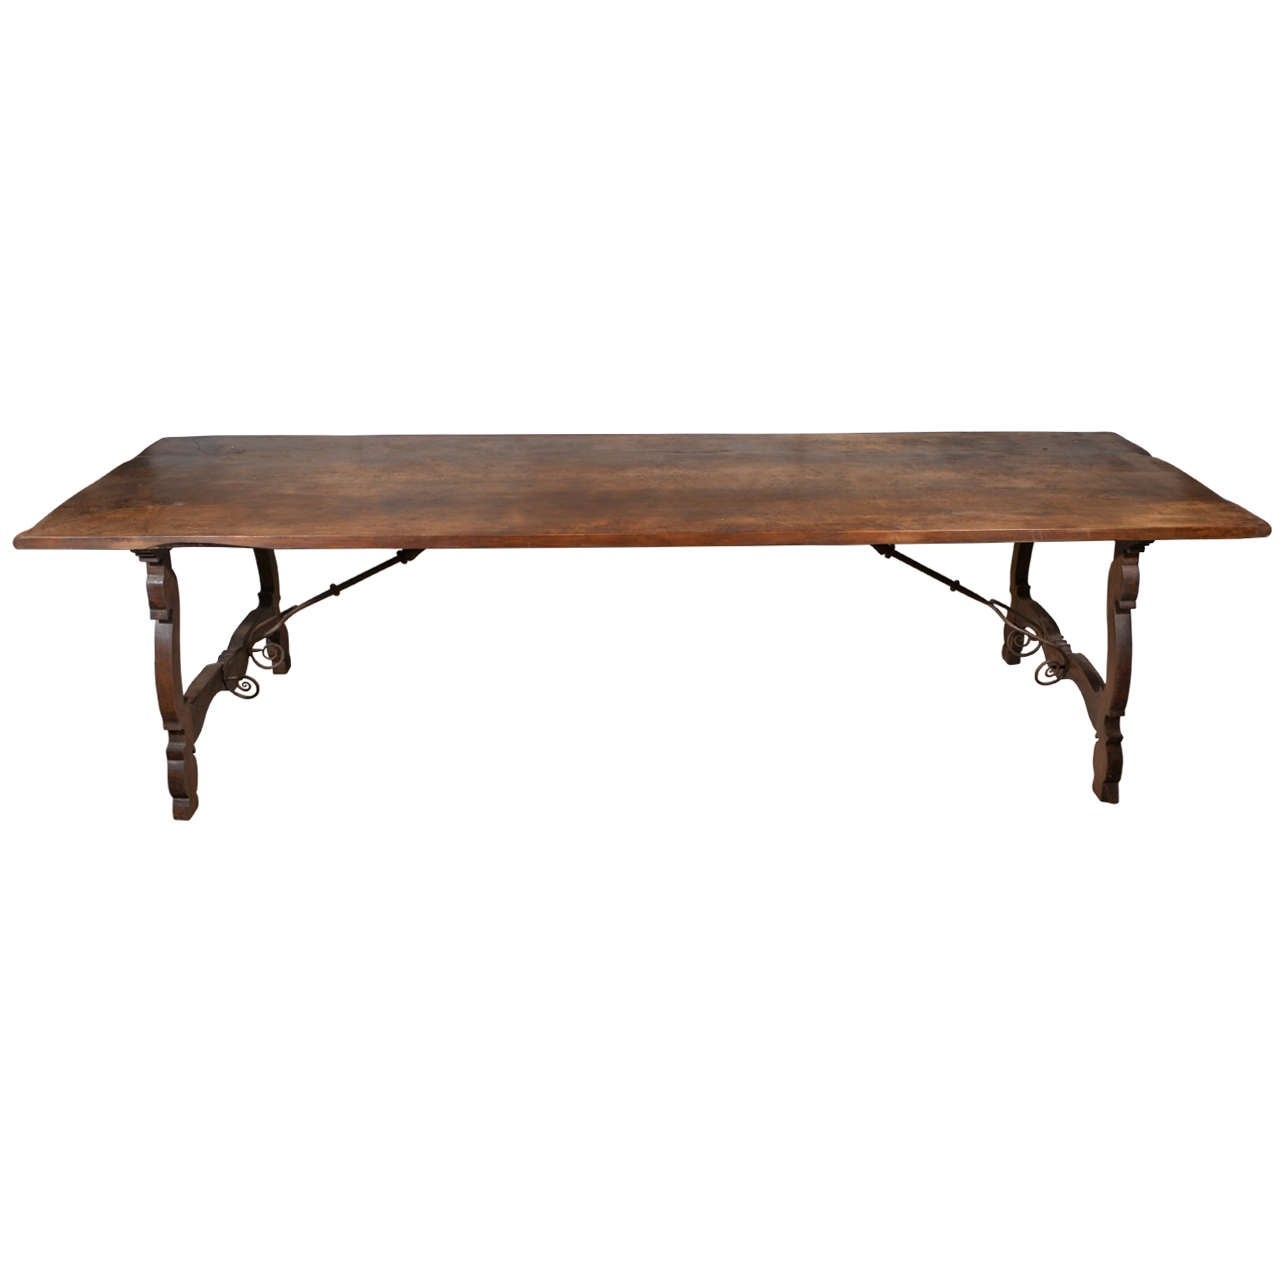 Spanish walnut dining table at 1stdibs for Table in spanish